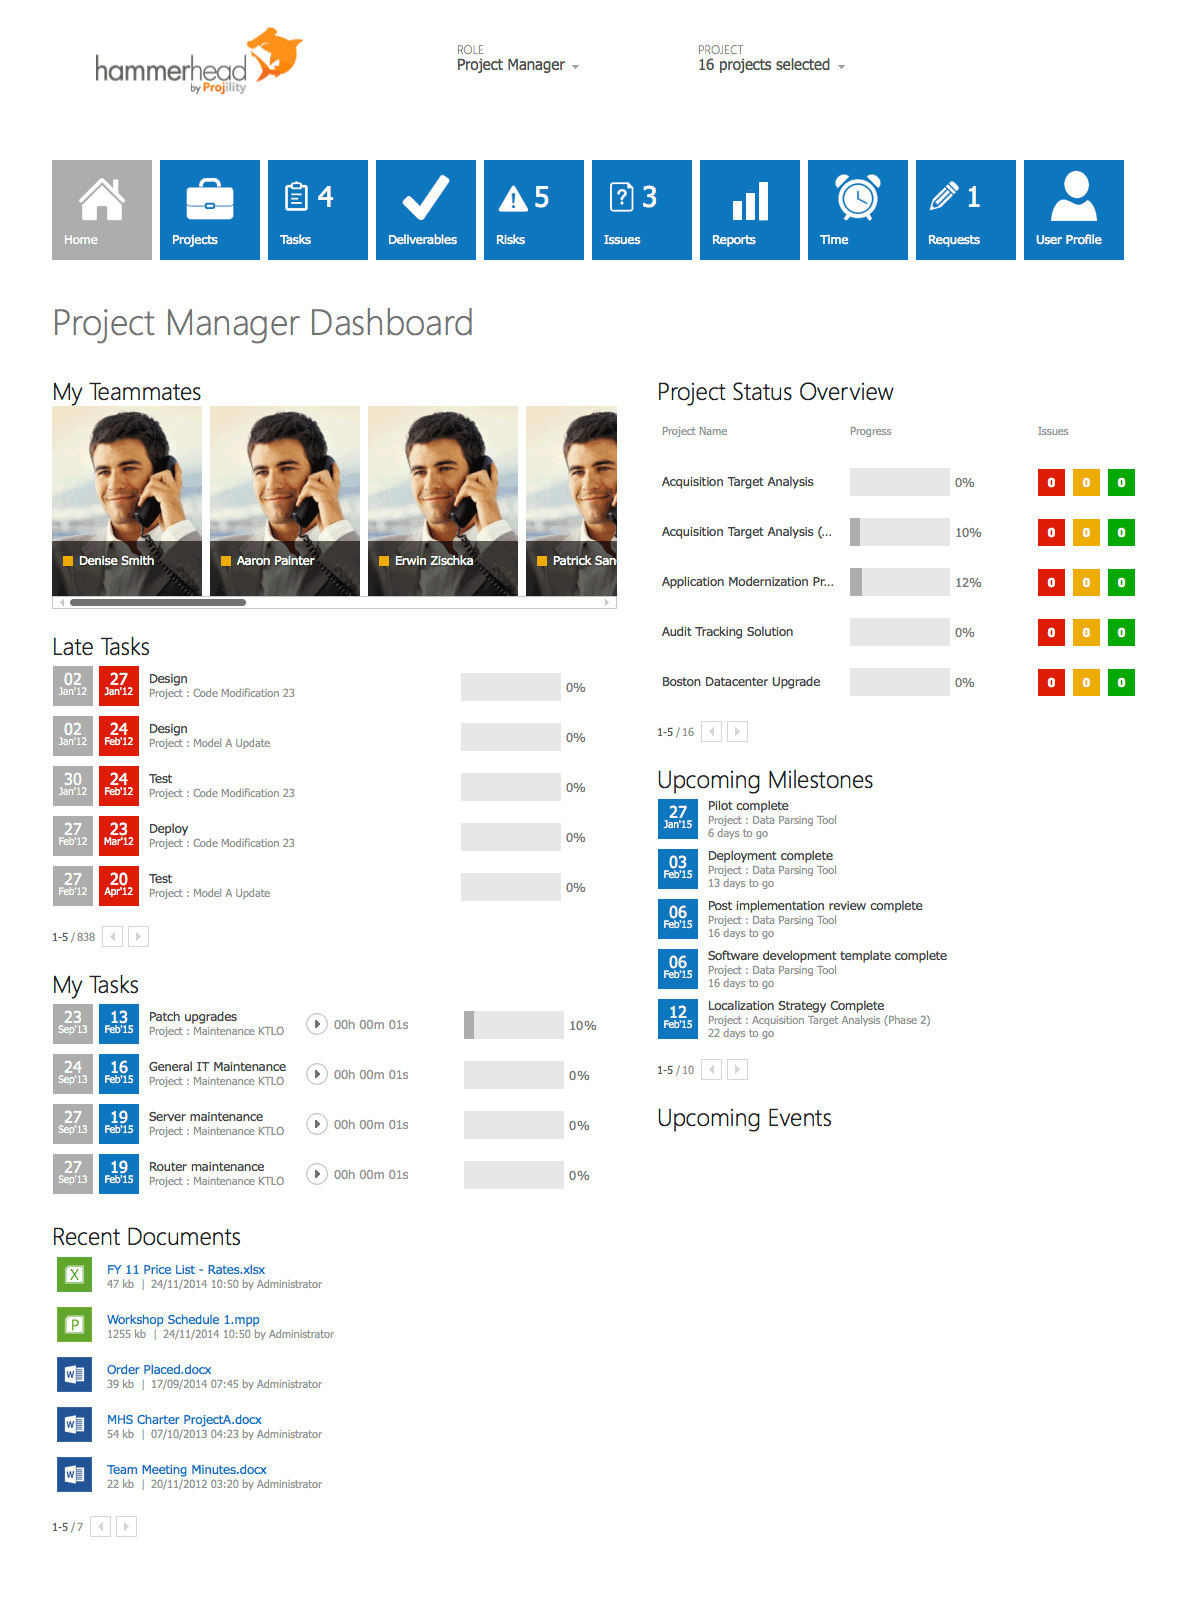 Hammerhead Projects – Project Manager Dashboard